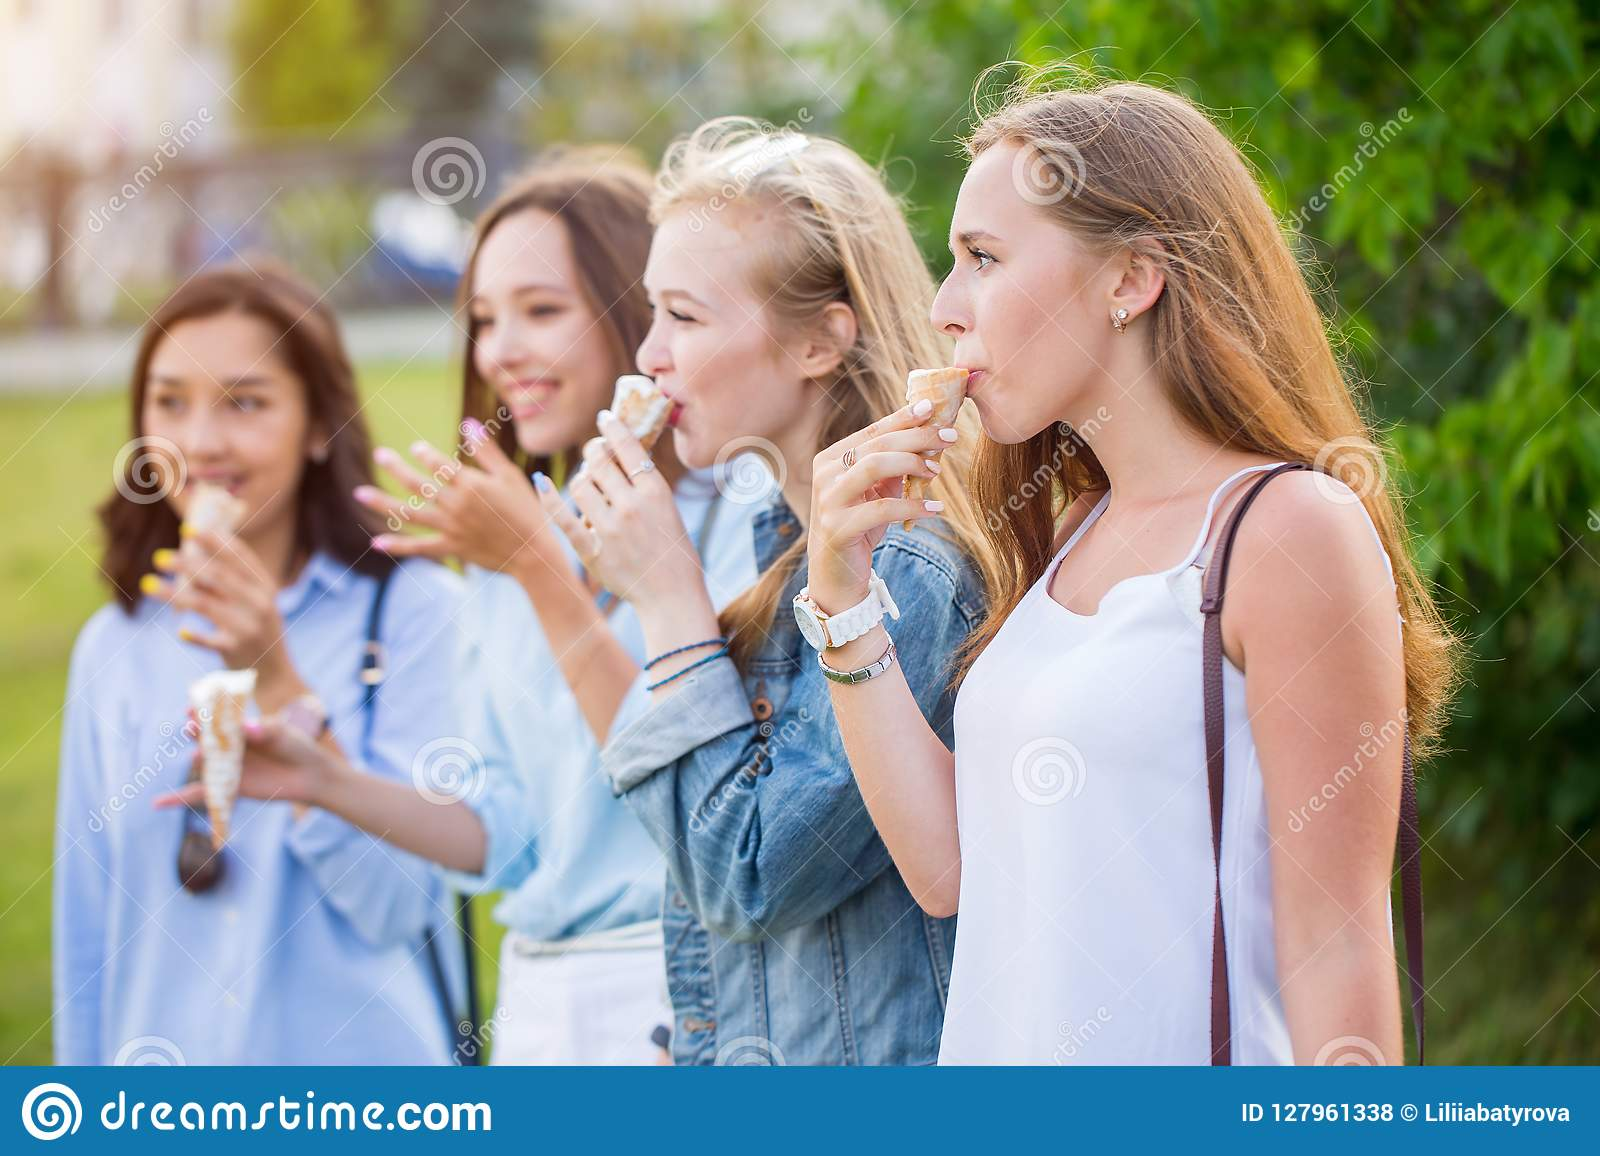 Four joyful young girlfriends standing in a row smiling happily eating ice cream in Park